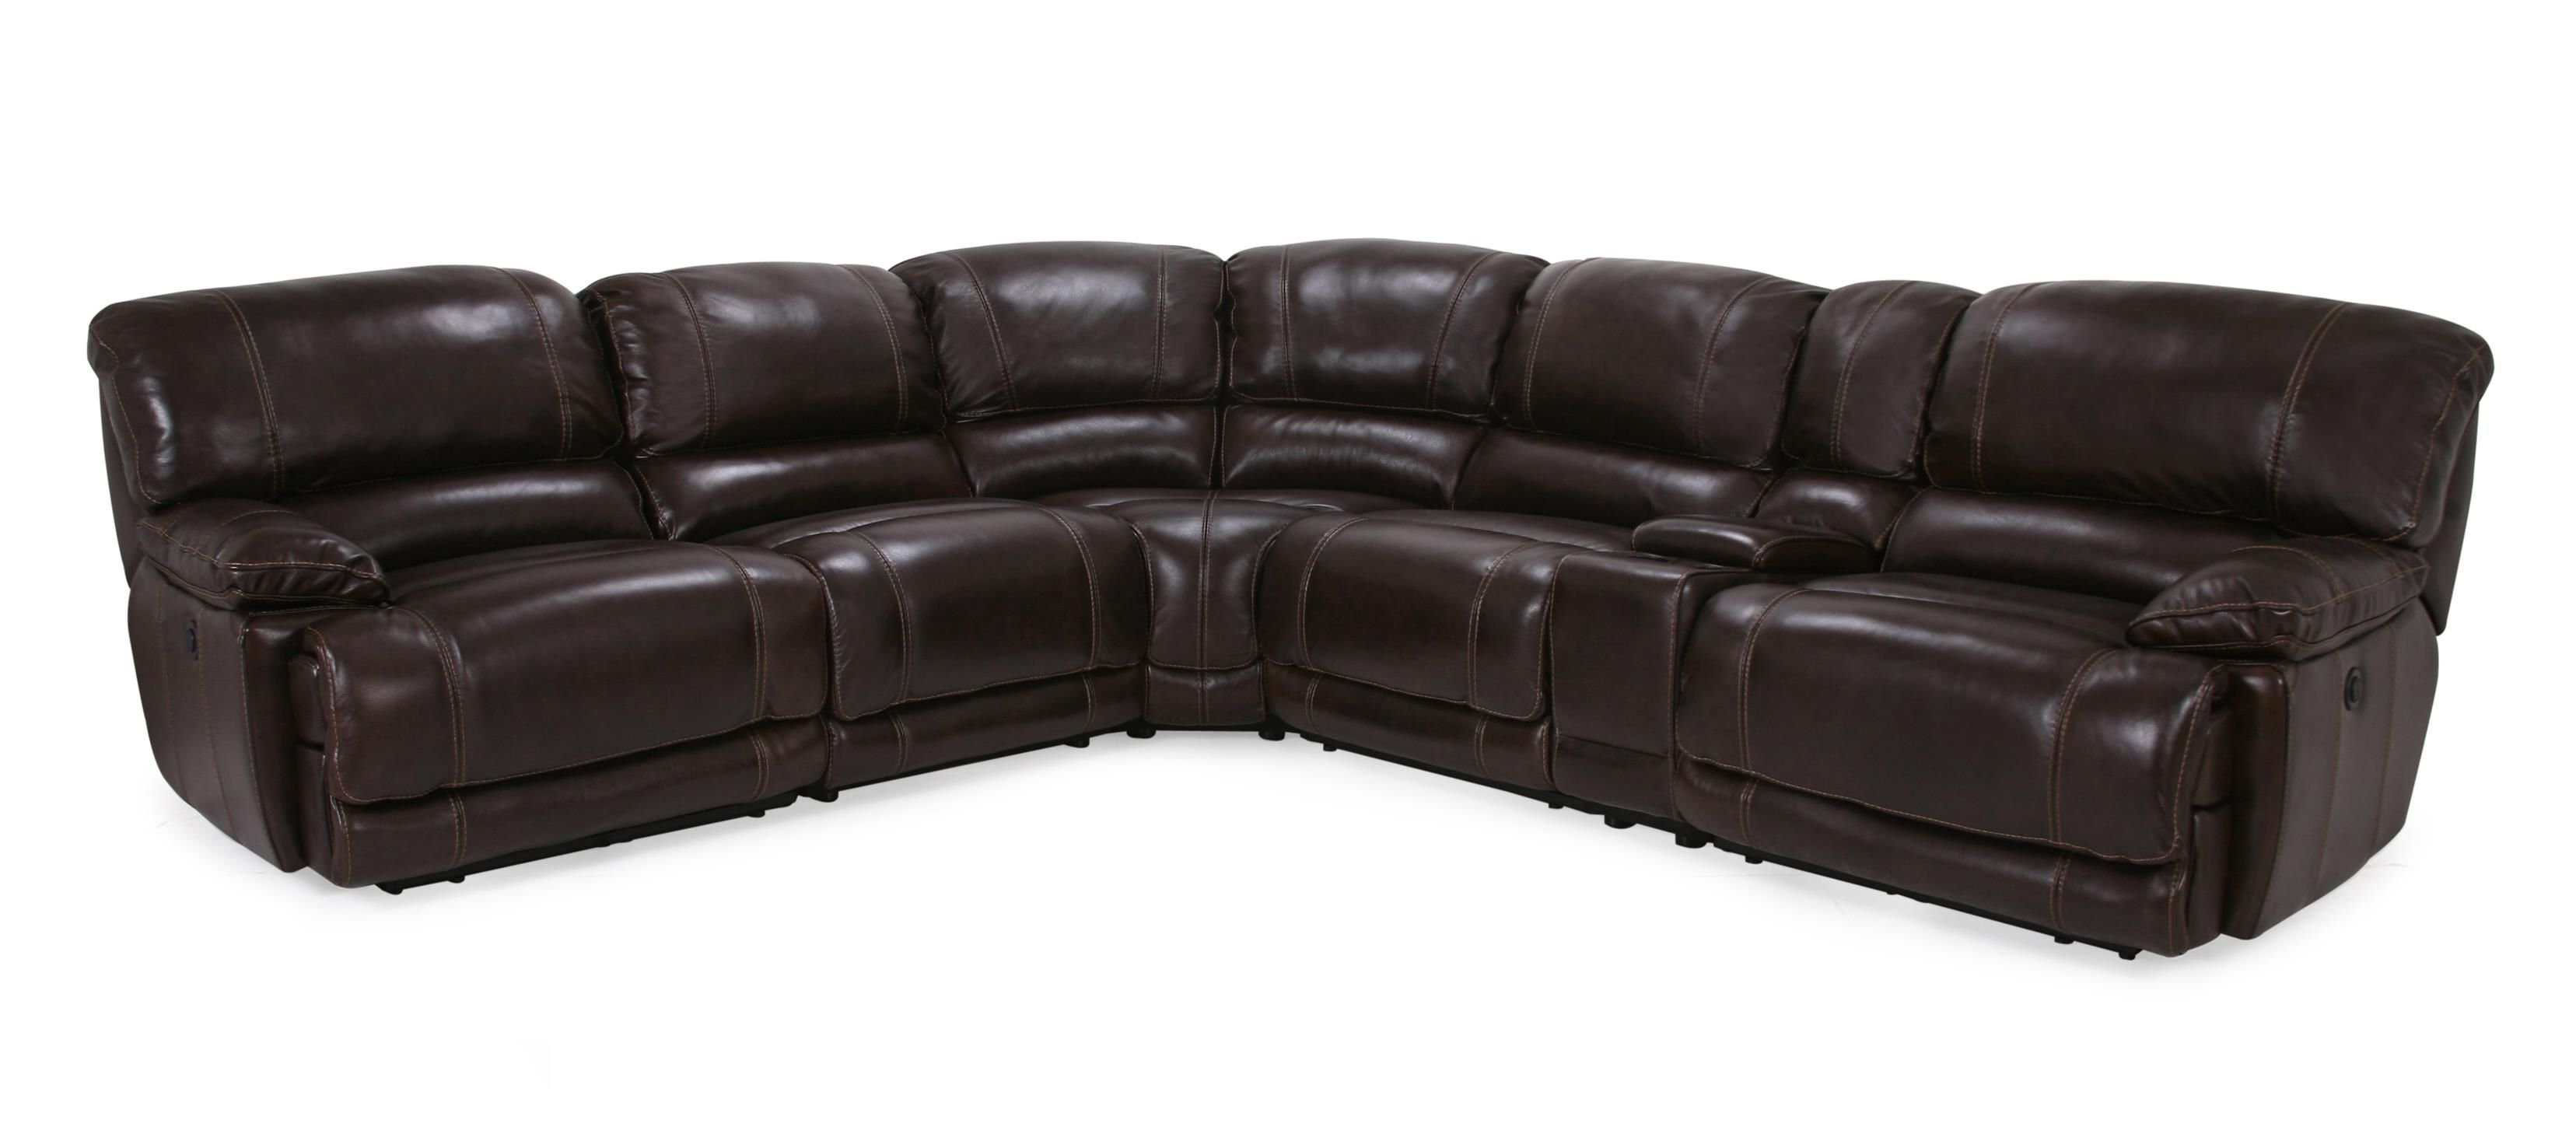 Calder Grey 6 Piece Manual Reclining Sectionals For Widely Used Fabulous 25 Power Reclining Sectional Sofa Favorite (View 12 of 20)